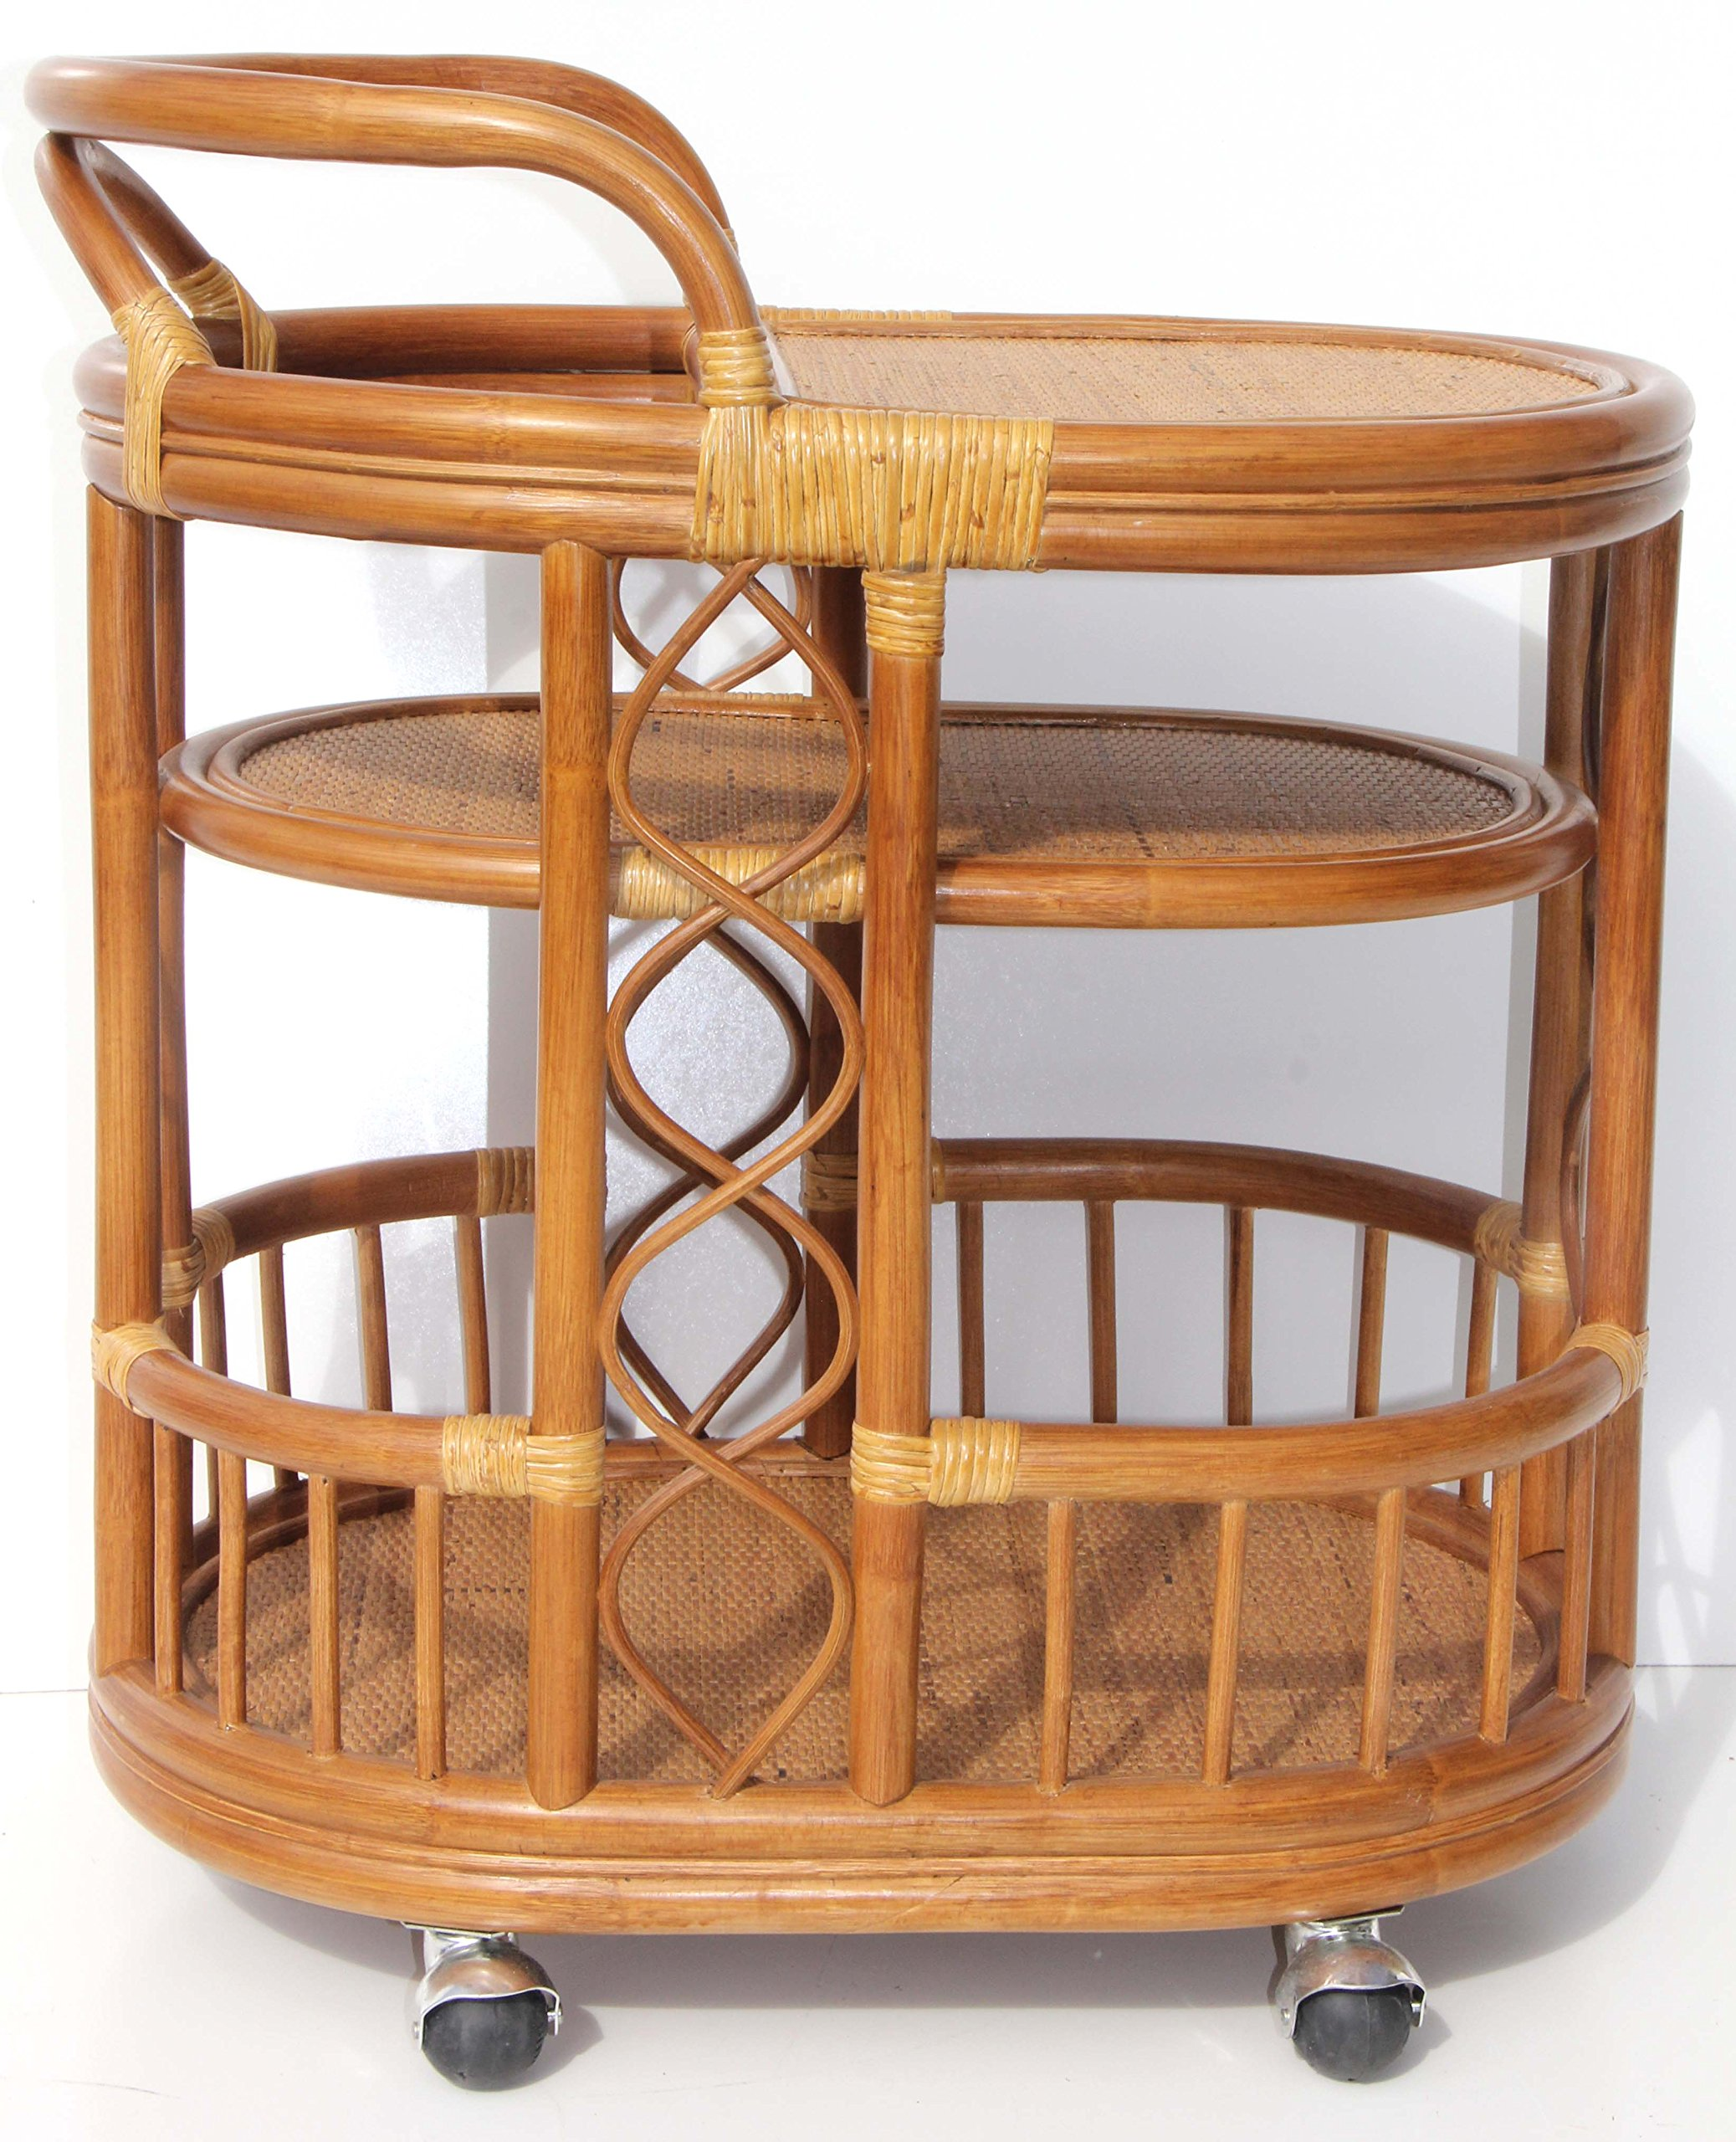 Moving Serving Cart Bar Table Natural Rattan Wicker Exclusive Handmade ECO, Cognac by SunBear Furniture (Image #4)